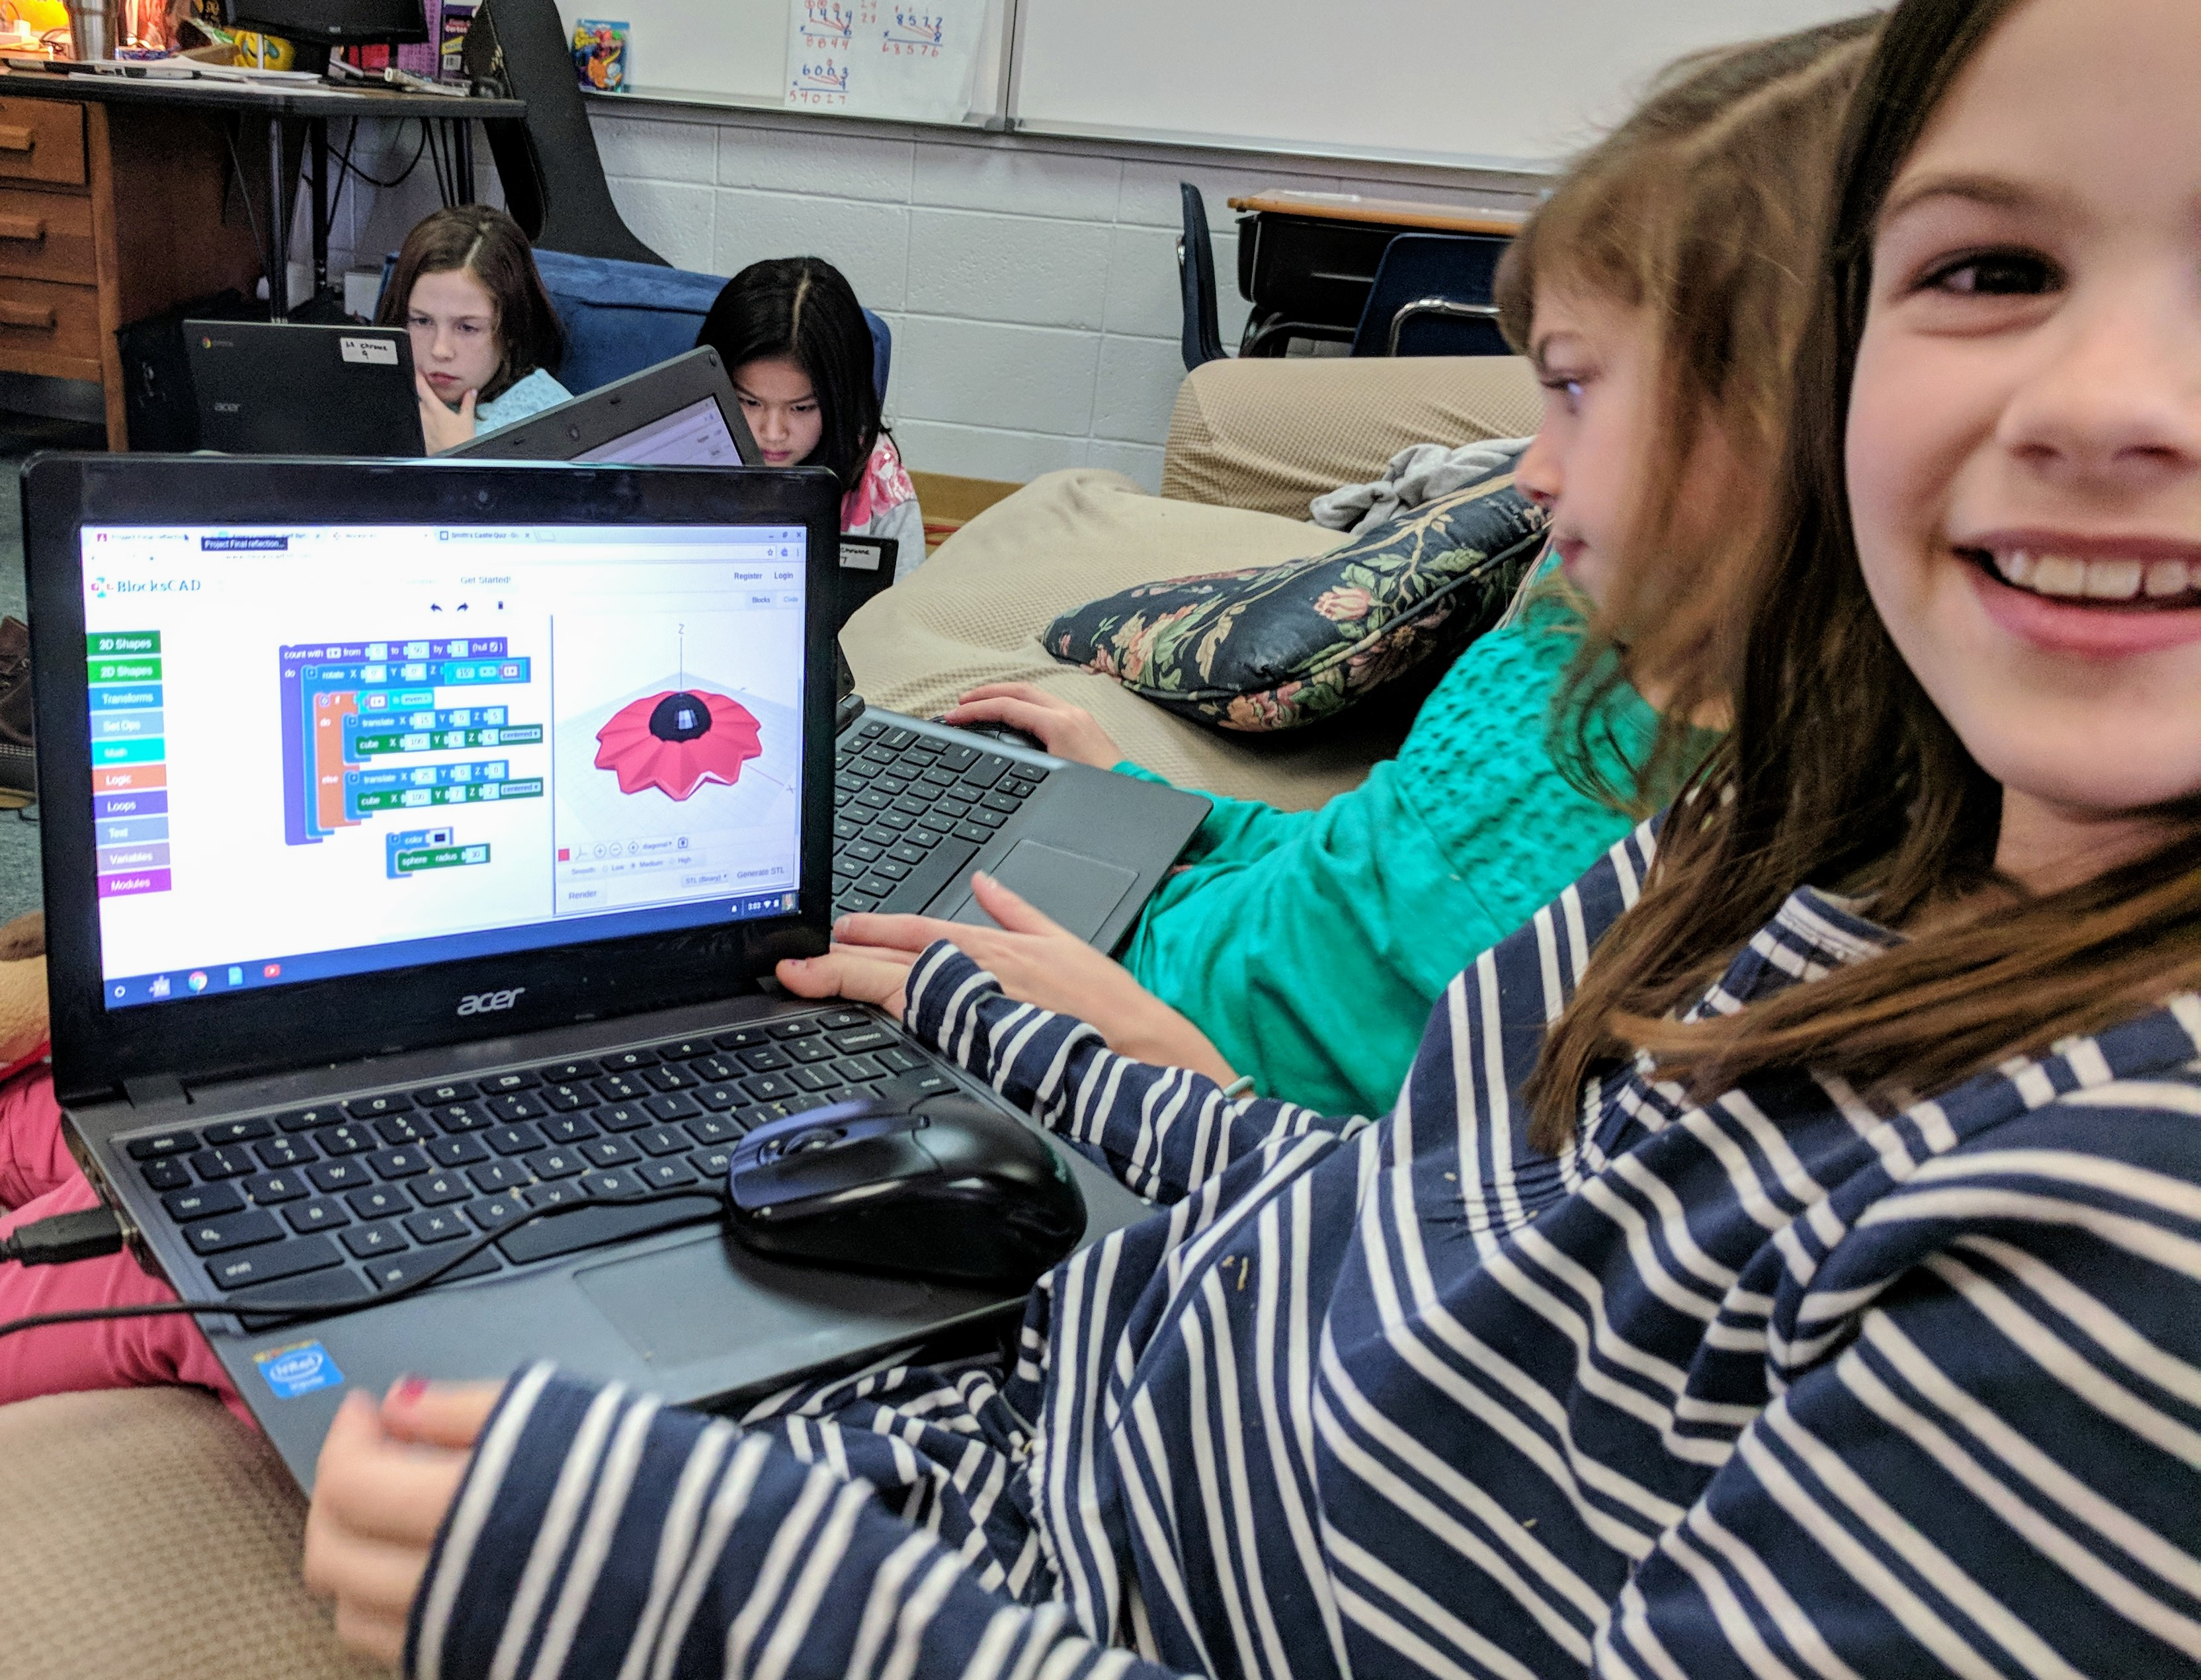 girls learning to code on laptop